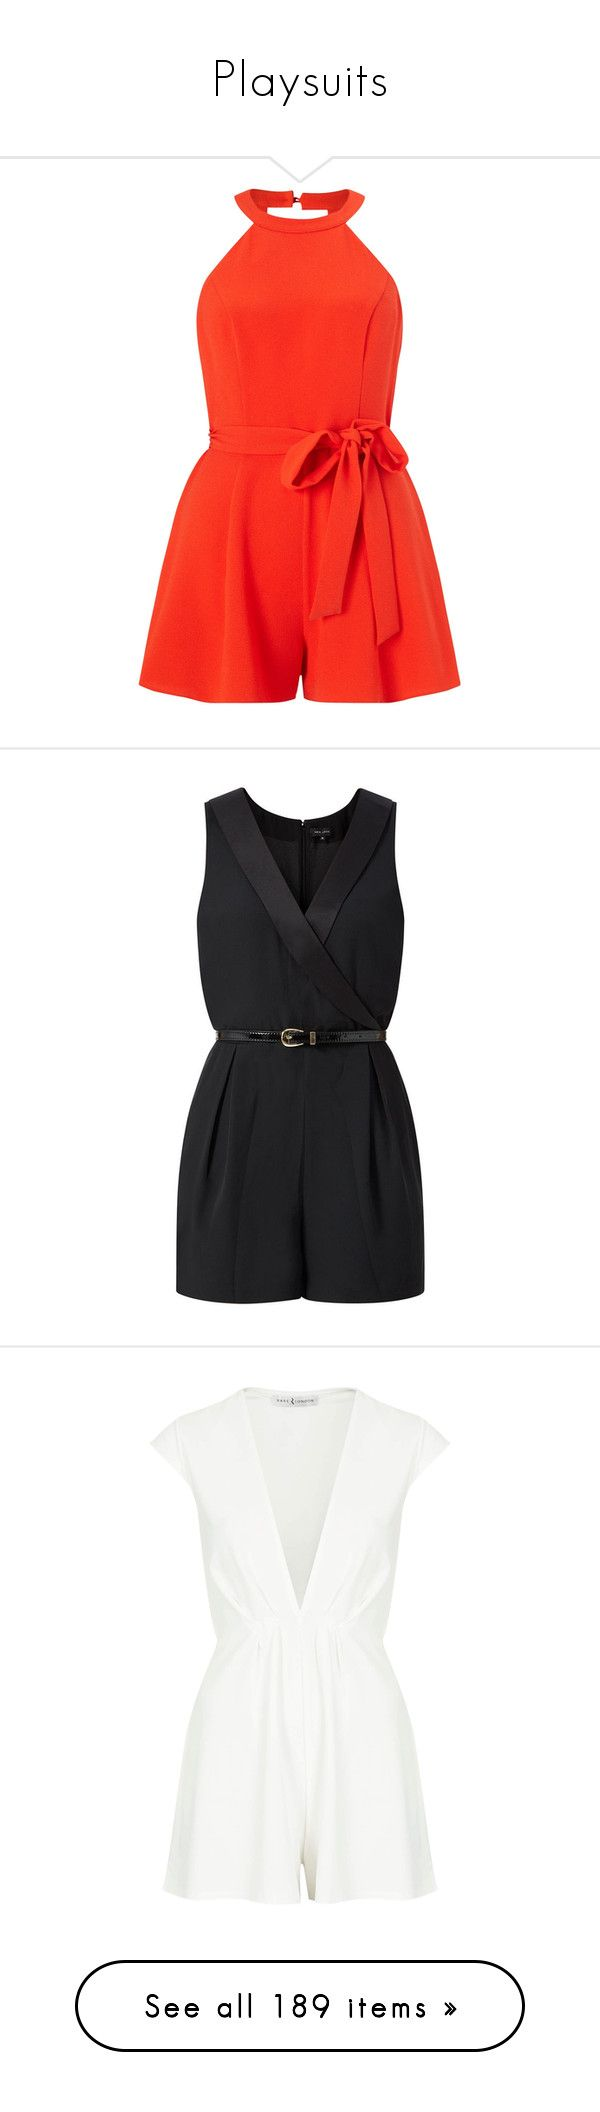 """""""Playsuits"""" by giovanna1995 ❤ liked on Polyvore featuring playsuit, jumpsuits, rompers, dresses, jumpsuits and rompers, petite, red jumpsuits, red halter top, orange jumpsuit and red romper jumpsuit"""